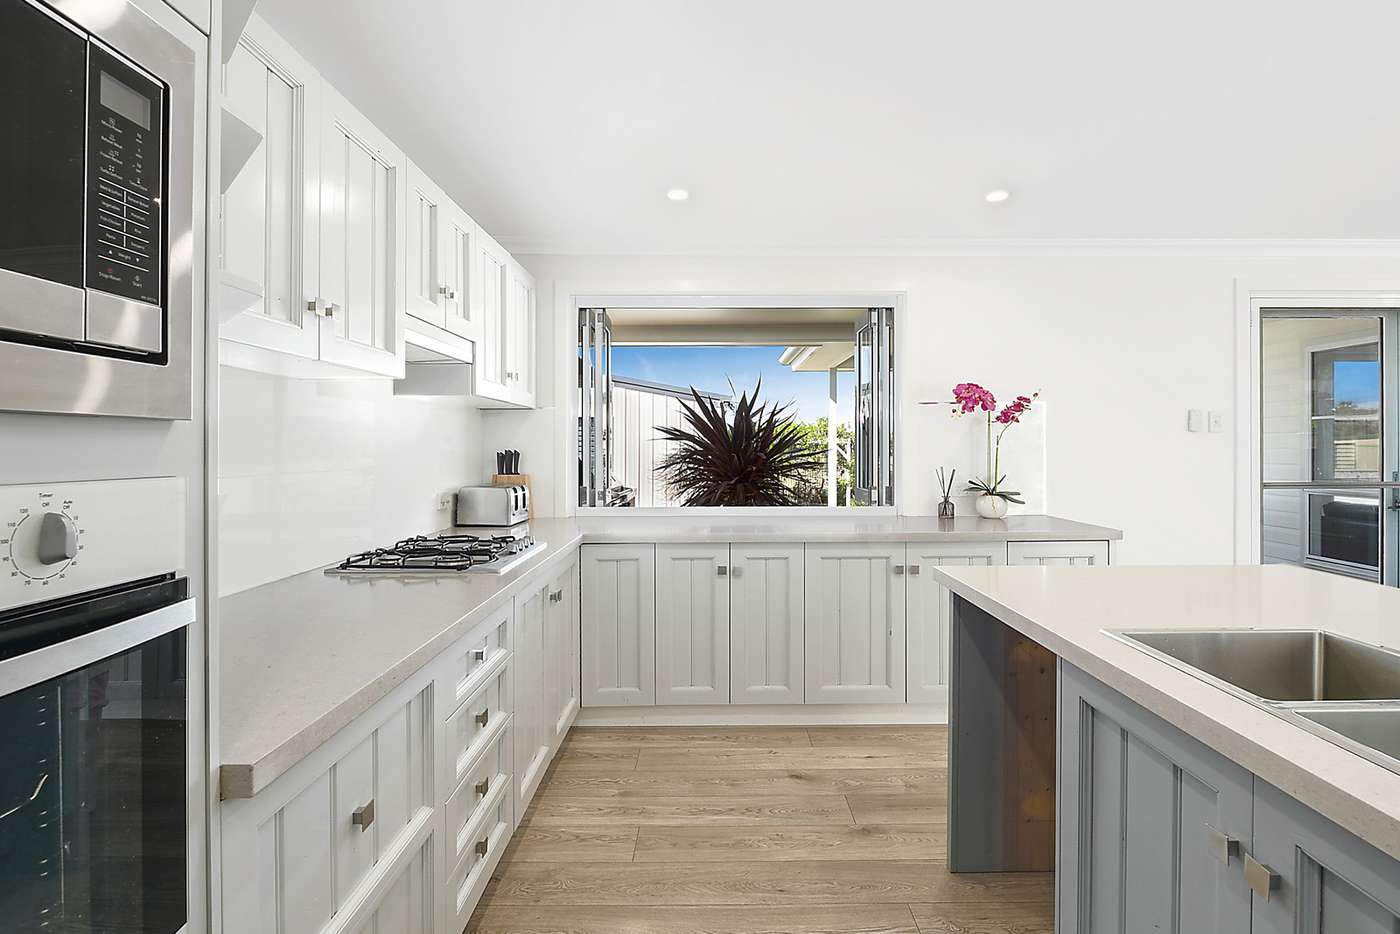 Fifth view of Homely house listing, 184 Market Street, Mudgee NSW 2850